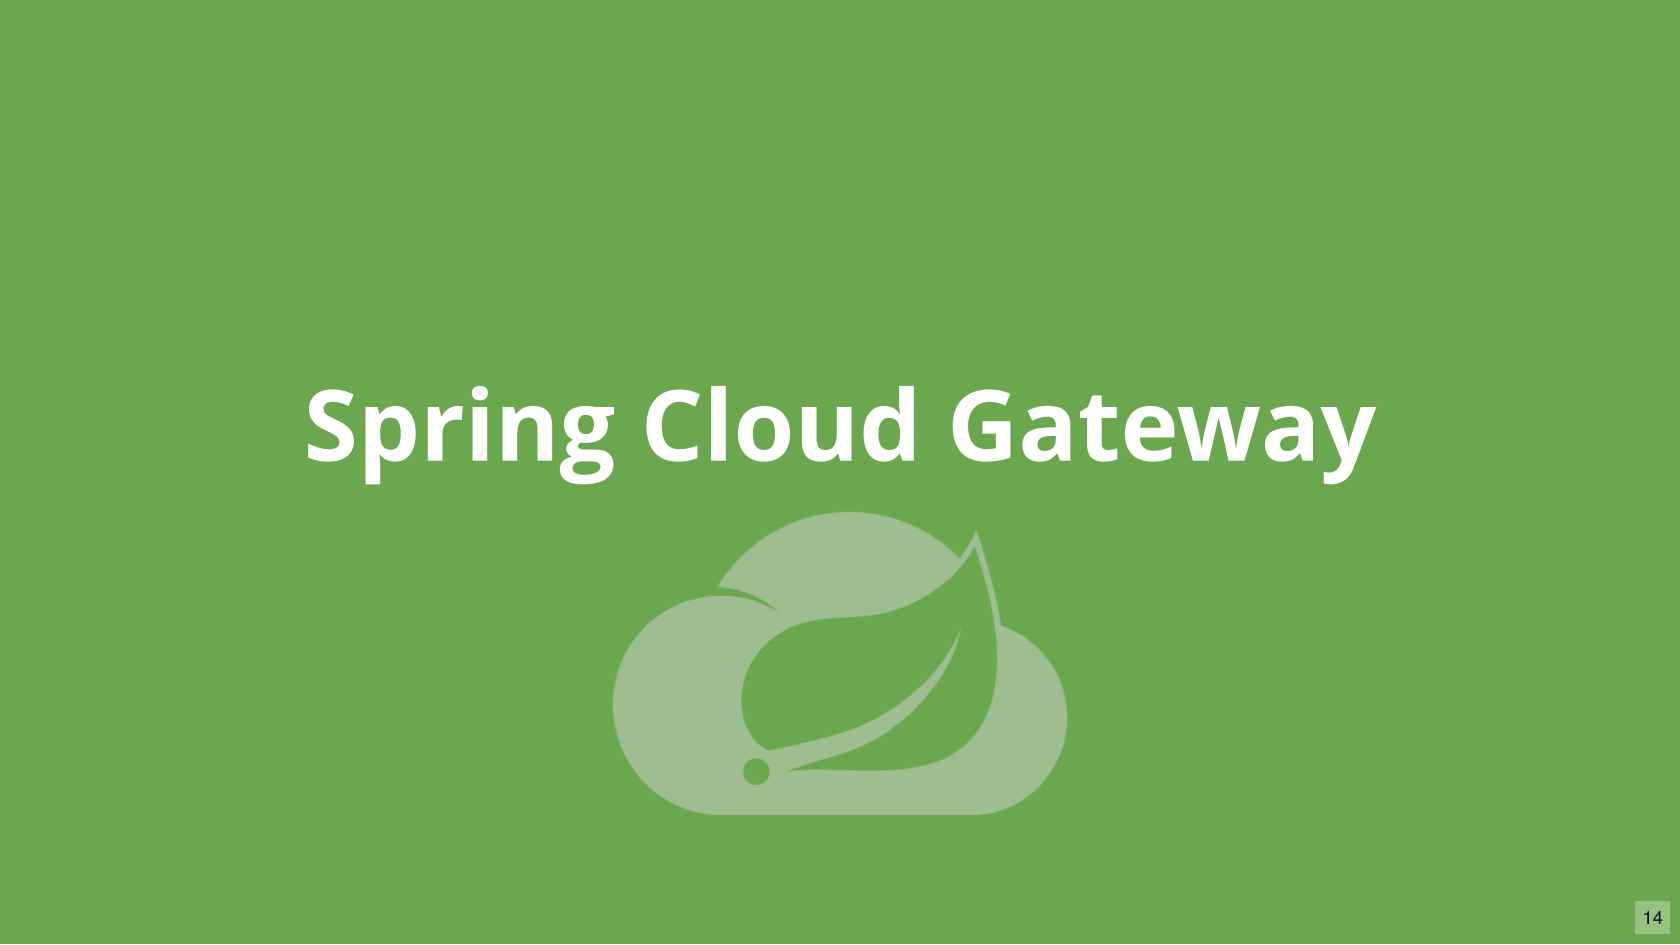 Try These Spring Cloud Gateway Example {Mahindra Racing}